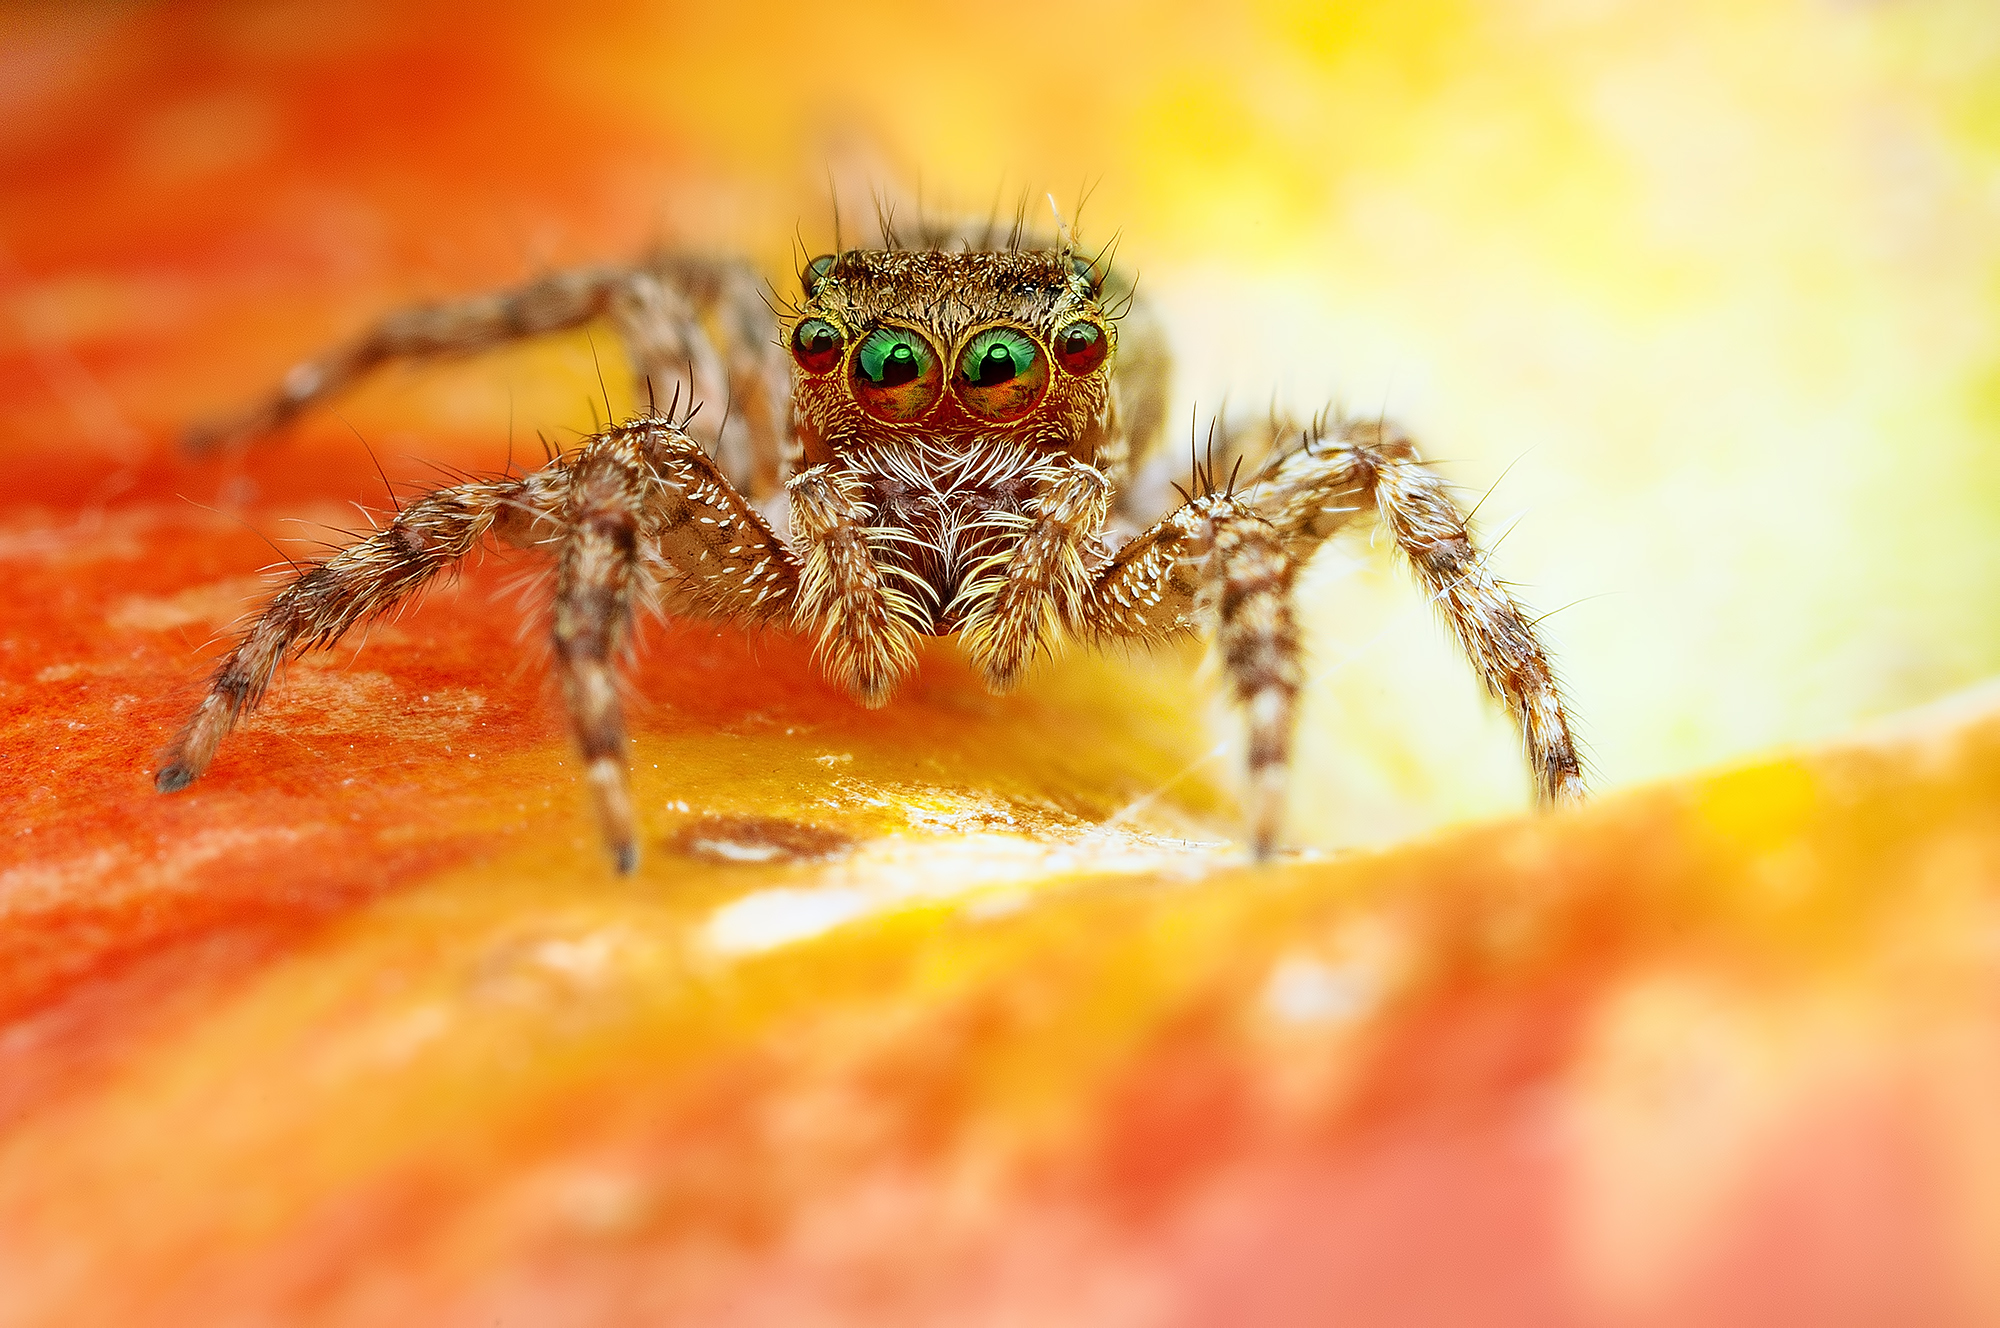 131091 download wallpaper Macro, Jumper, Spider, Eyes screensavers and pictures for free